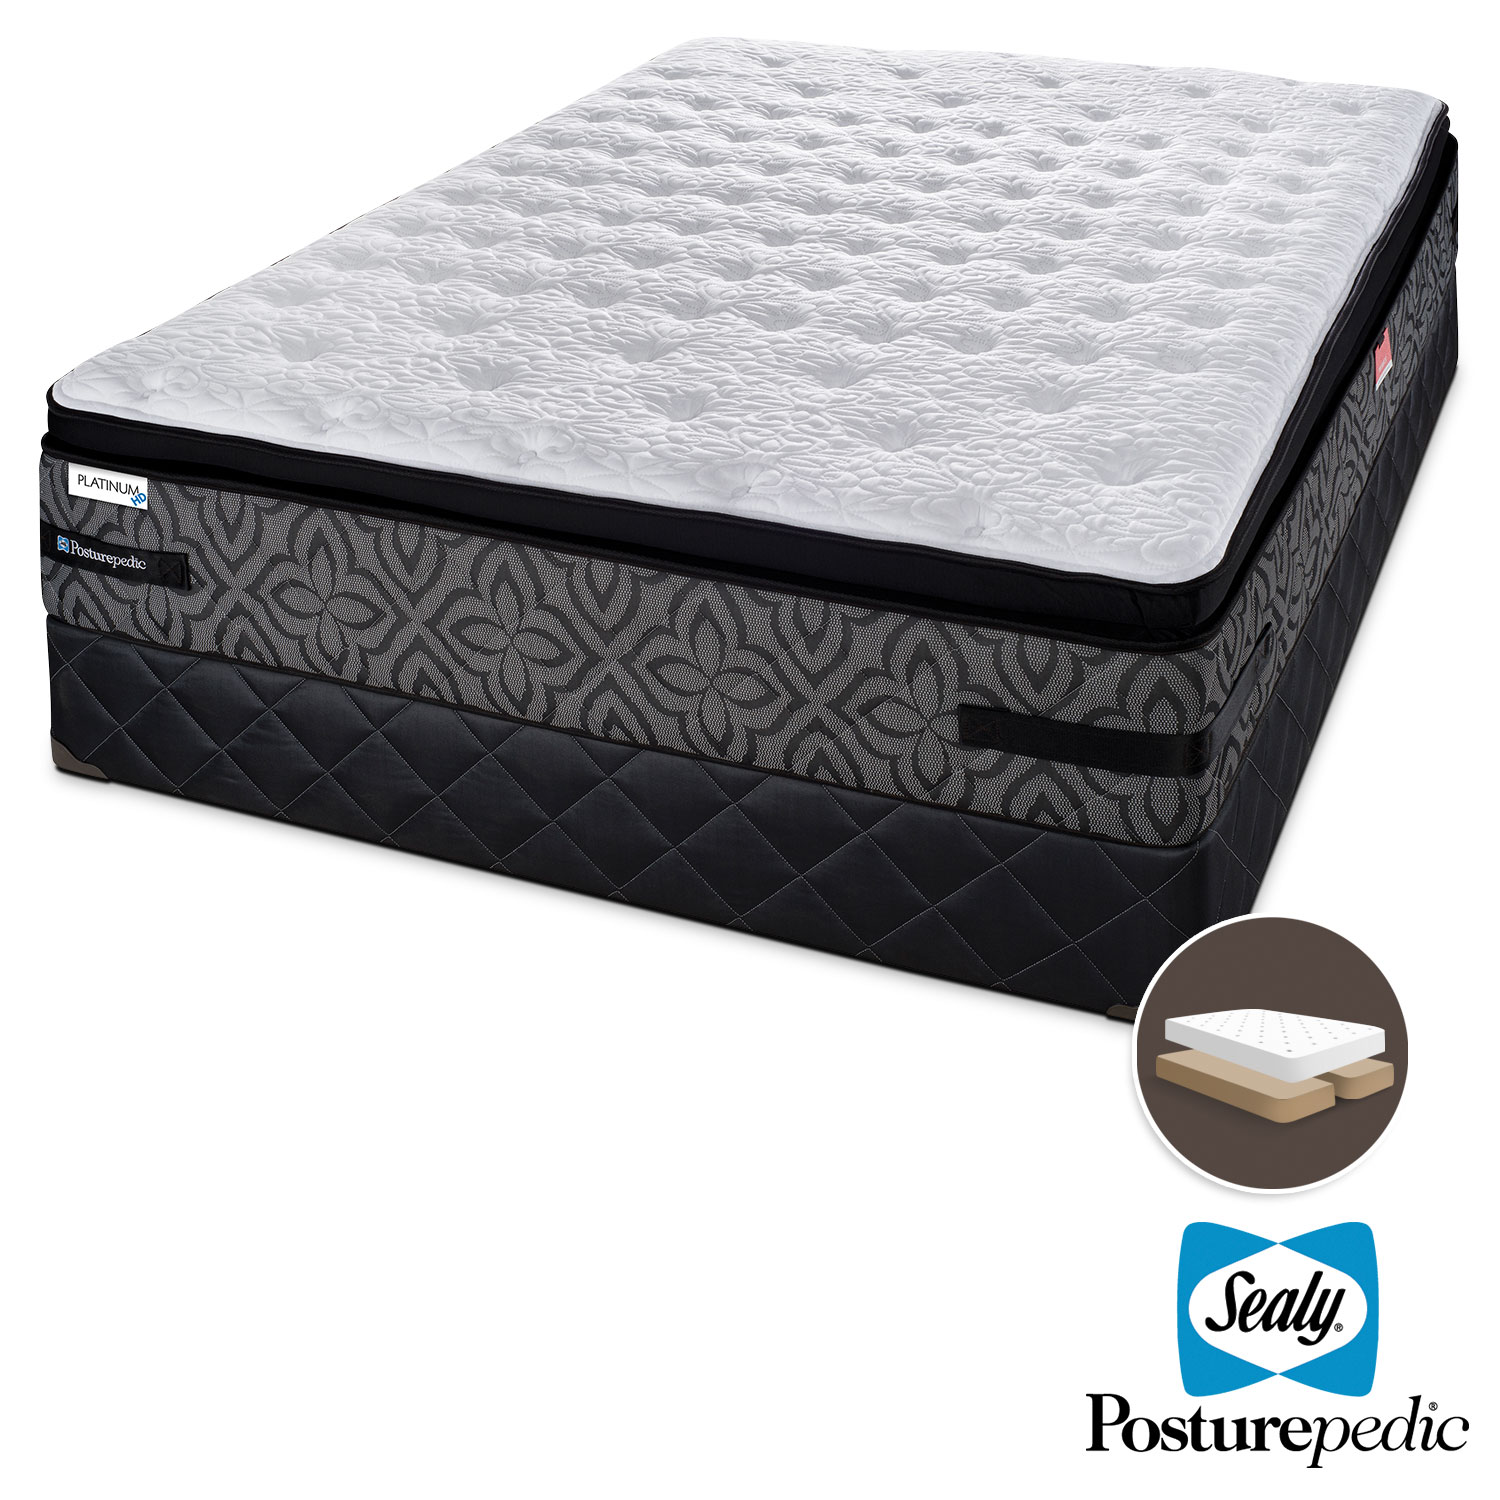 Sealy Posturepedic 2 K Firm King Mattress and Split Boxspring Set